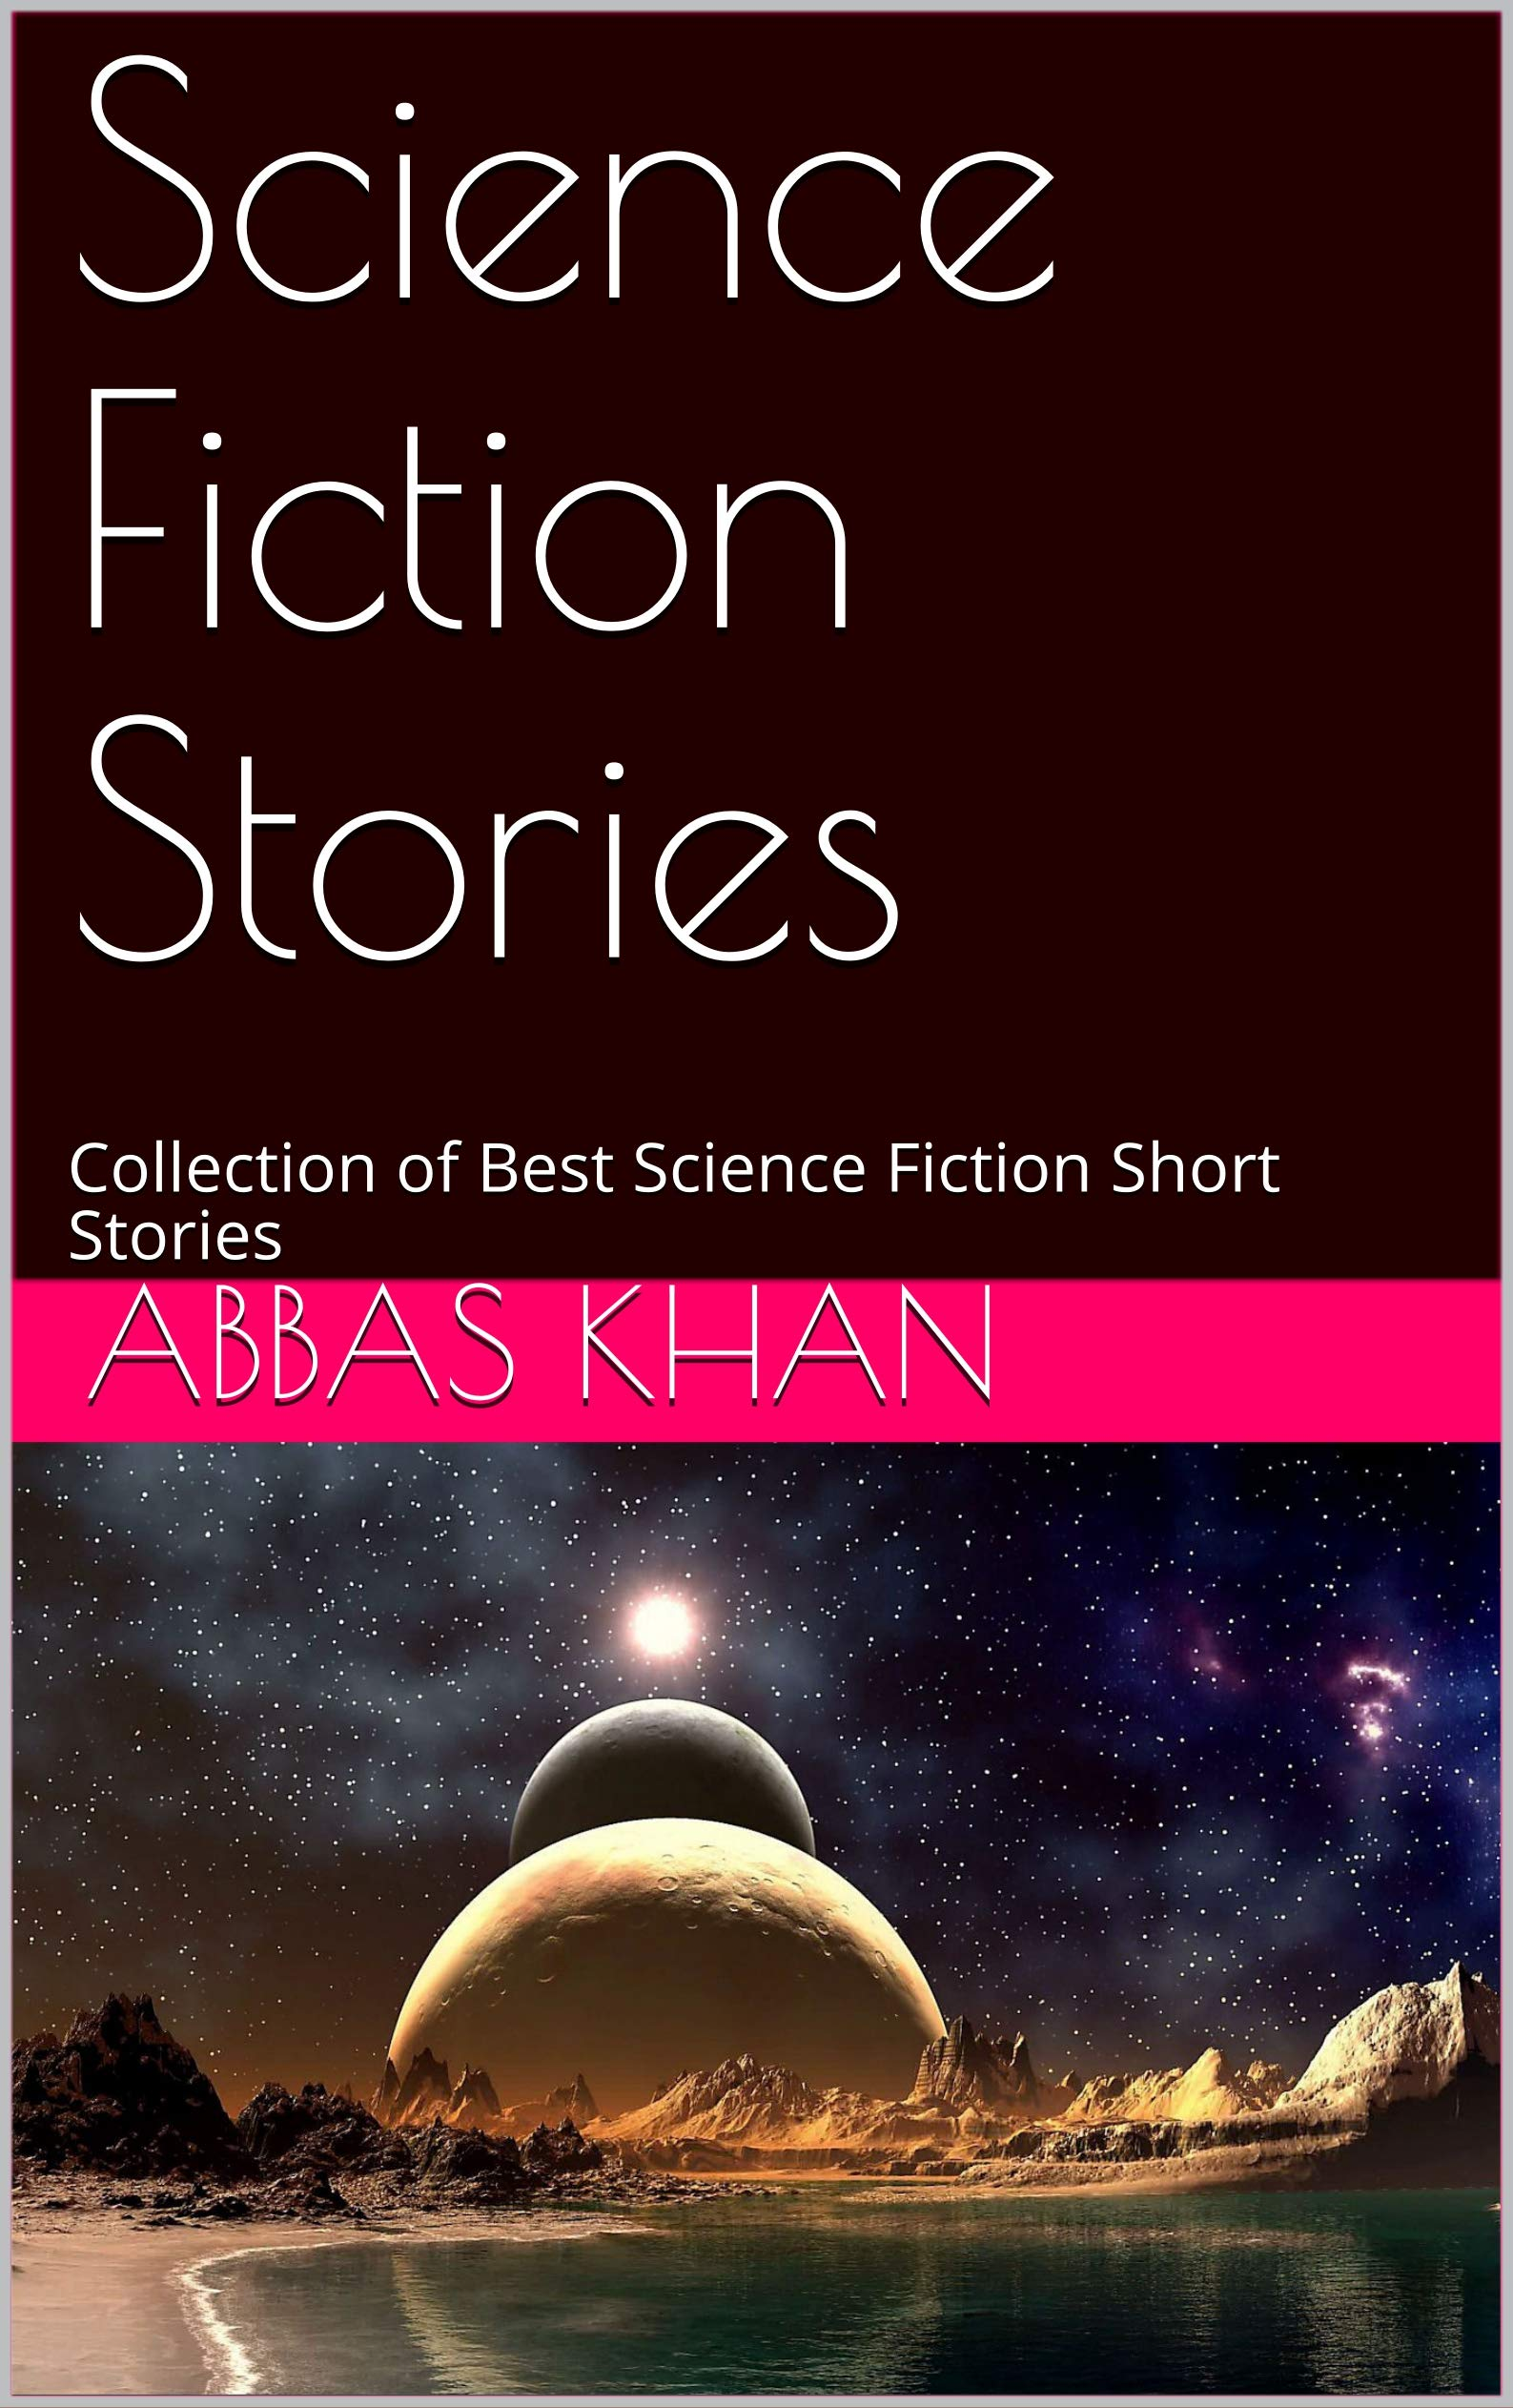 Science Fiction Stories: Collection of Best Science Fiction Short Stories